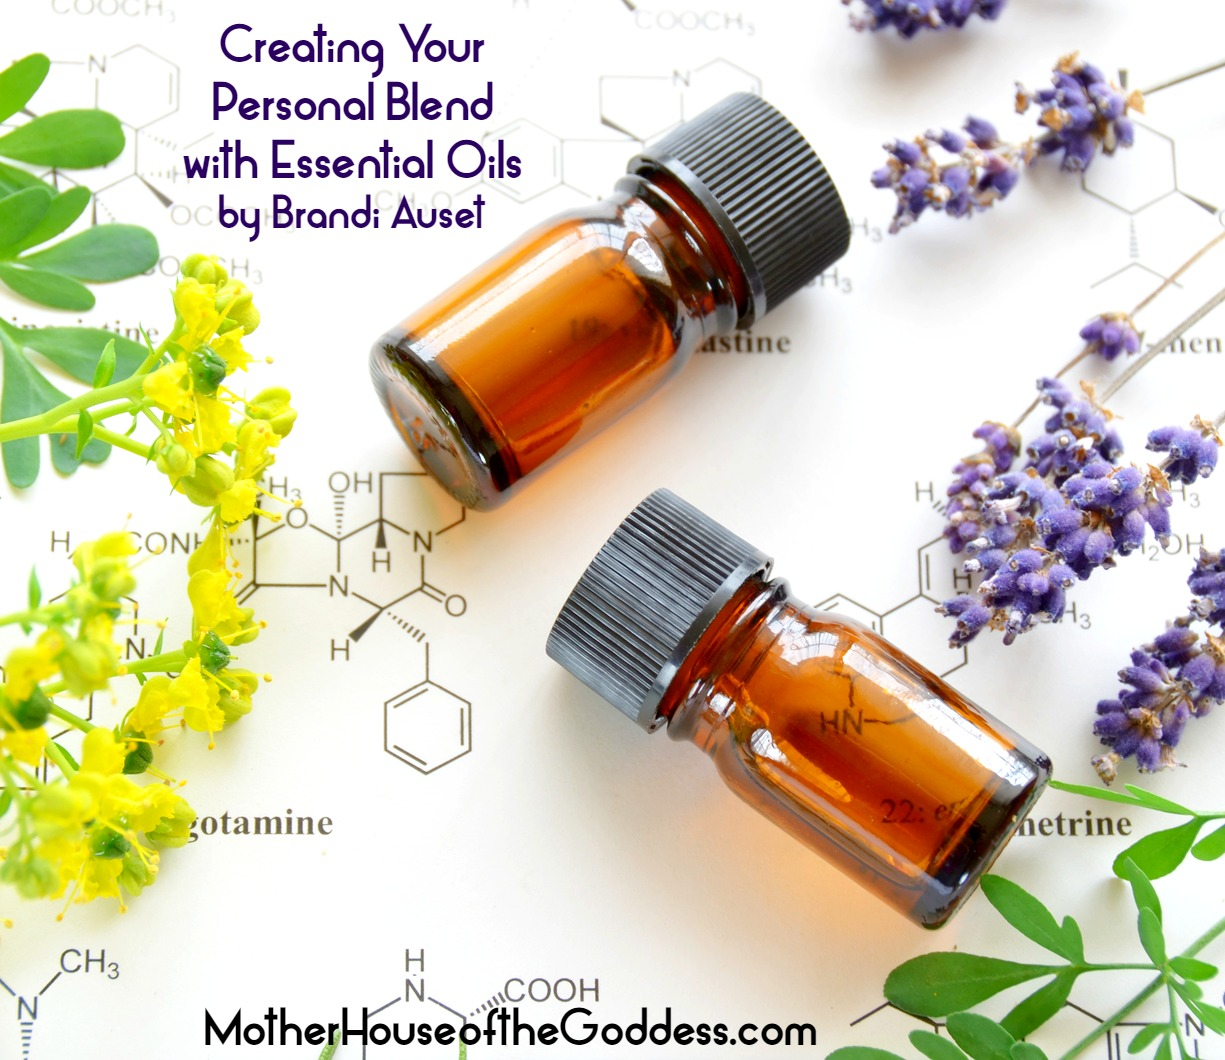 Creating Your Personal Blend with Essential Oils by Brandi Auset for MotherHouse of the Goddess